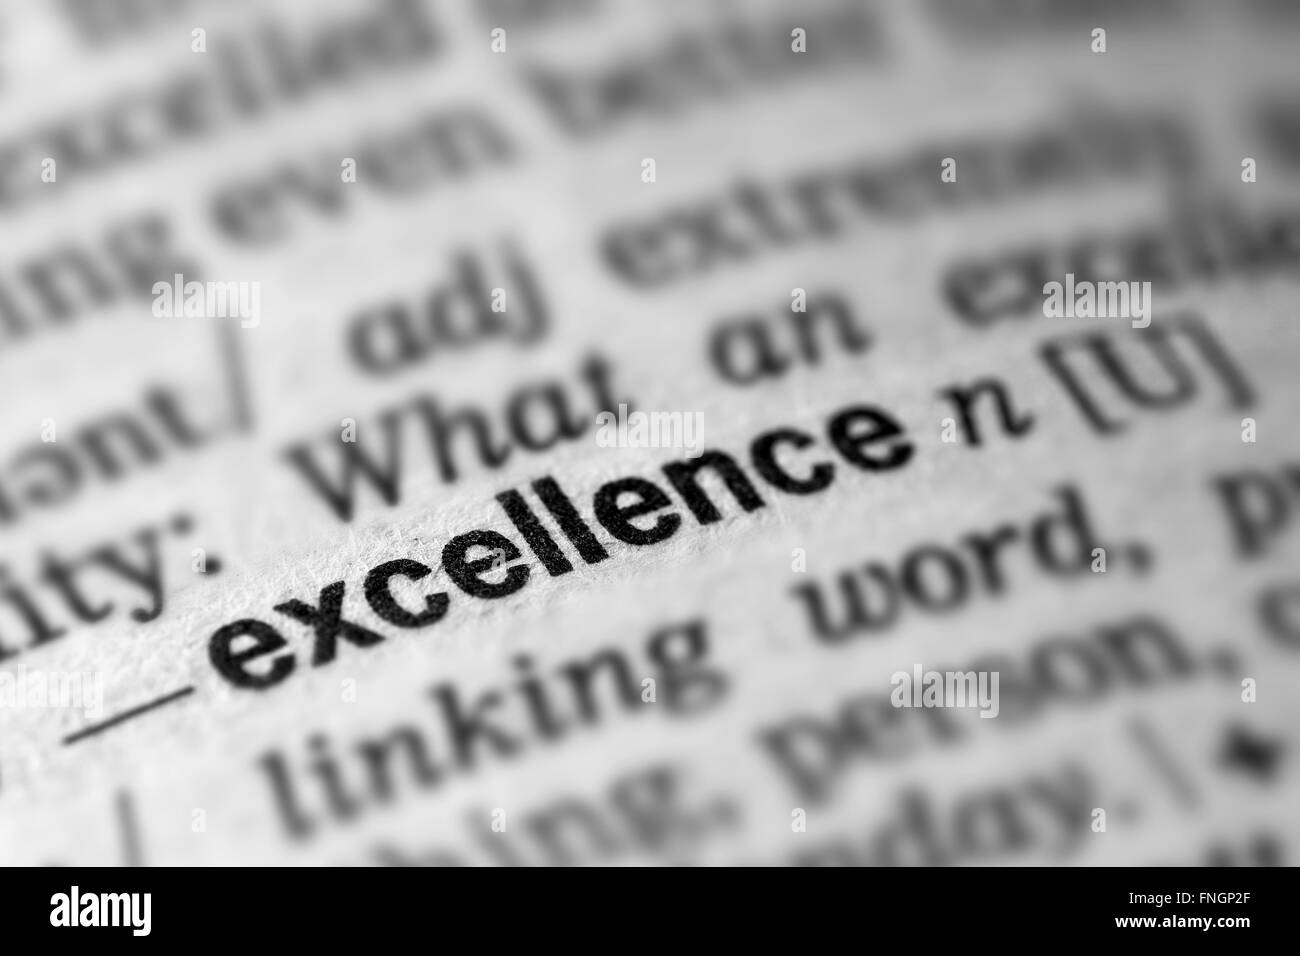 Excellence Definition Word Text in Dictionary Page - Stock Image